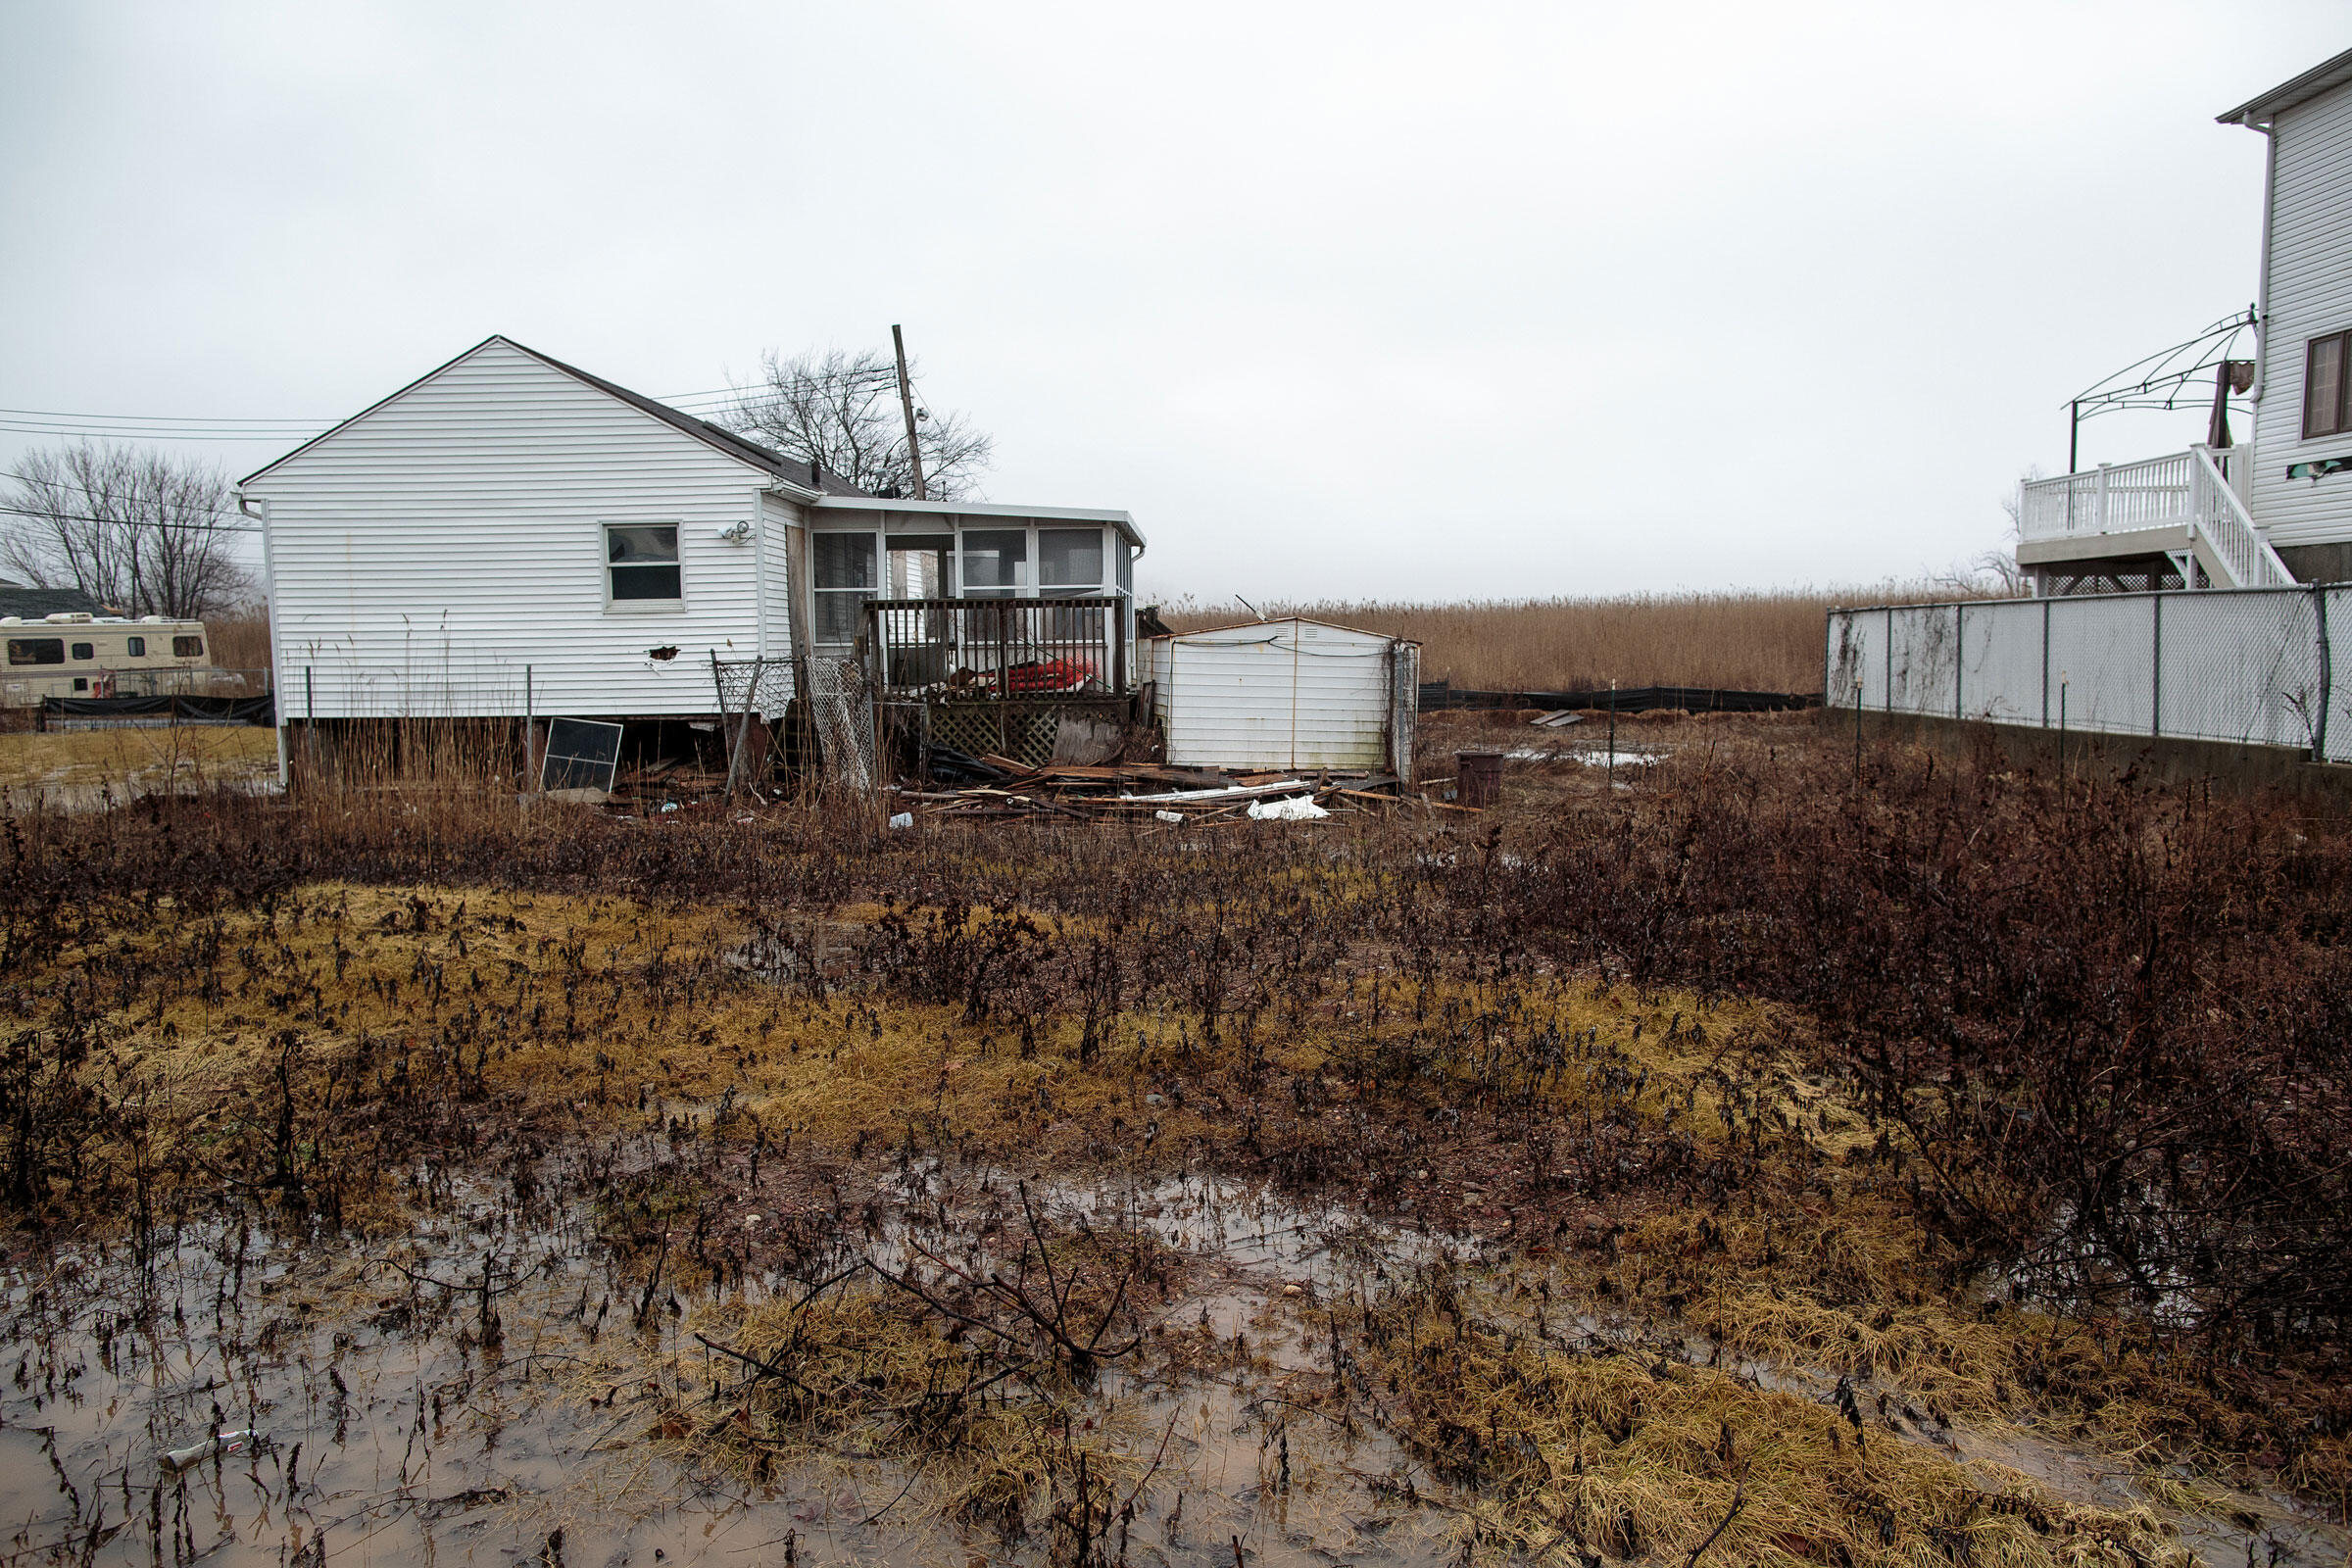 A puddle from the previous night's rain gathers in the yard of a water-damaged house, returning the land to the marshland it once was. February 24, 2016. Hillary Eggers